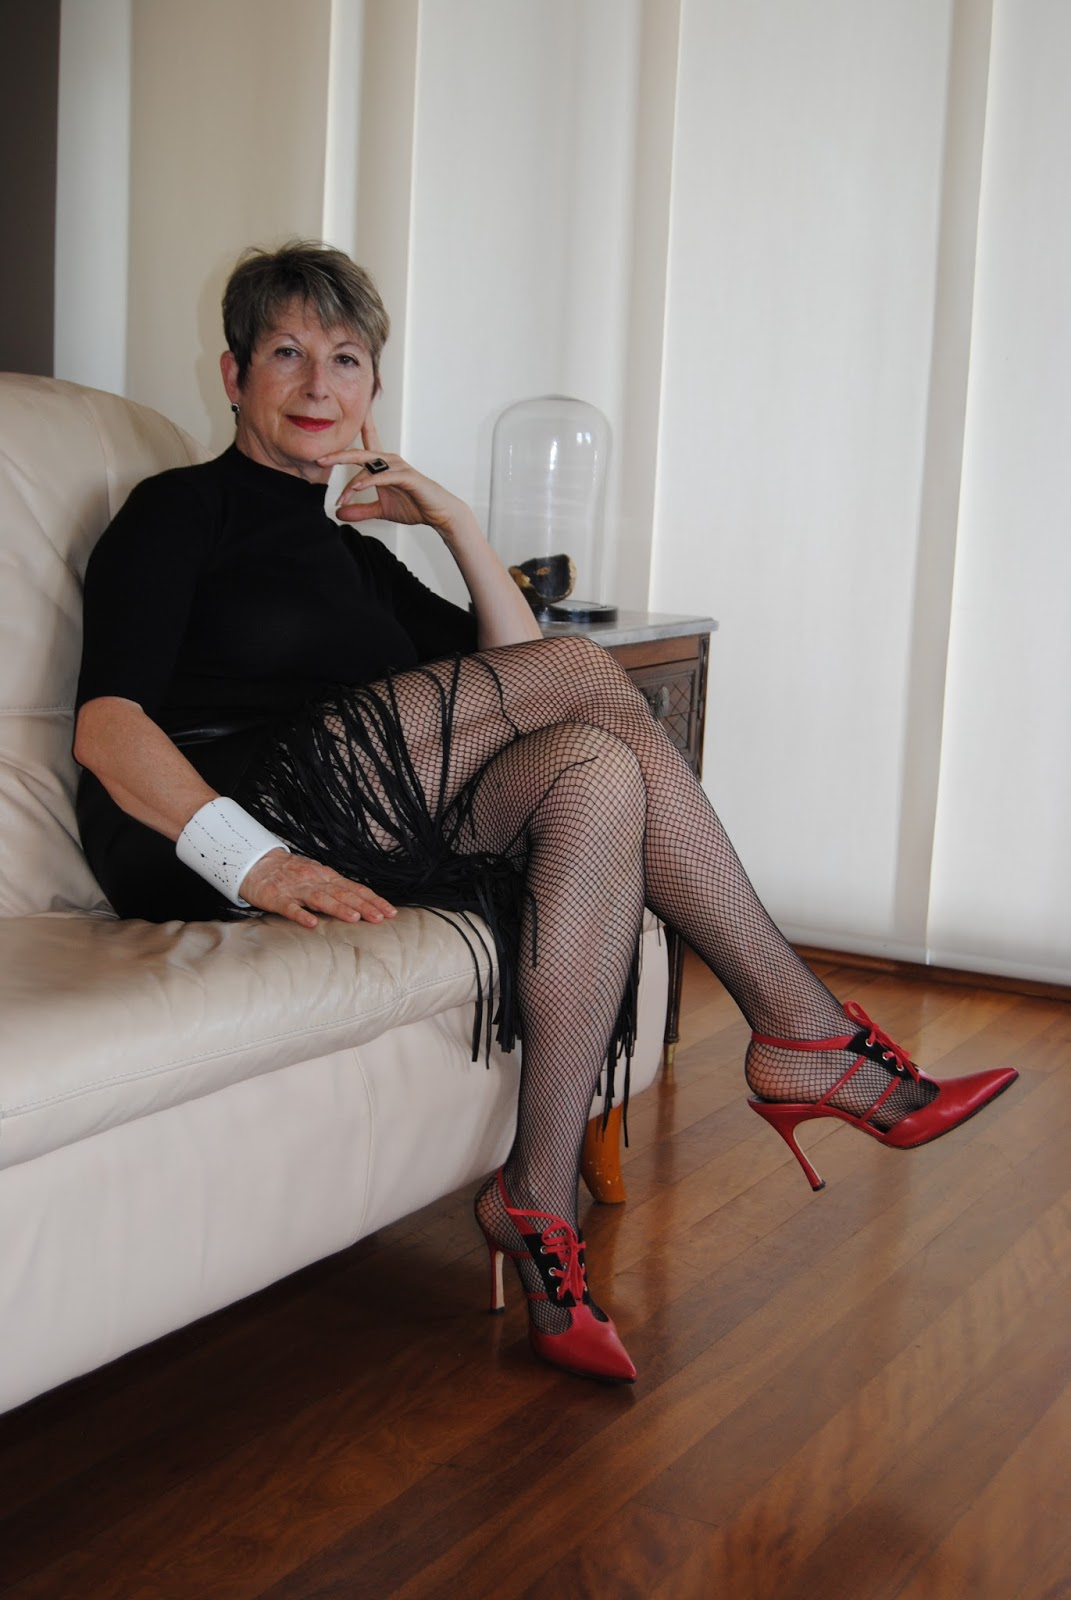 looking fabulous @ fifty: leather skirt, fishnet stockings|rock